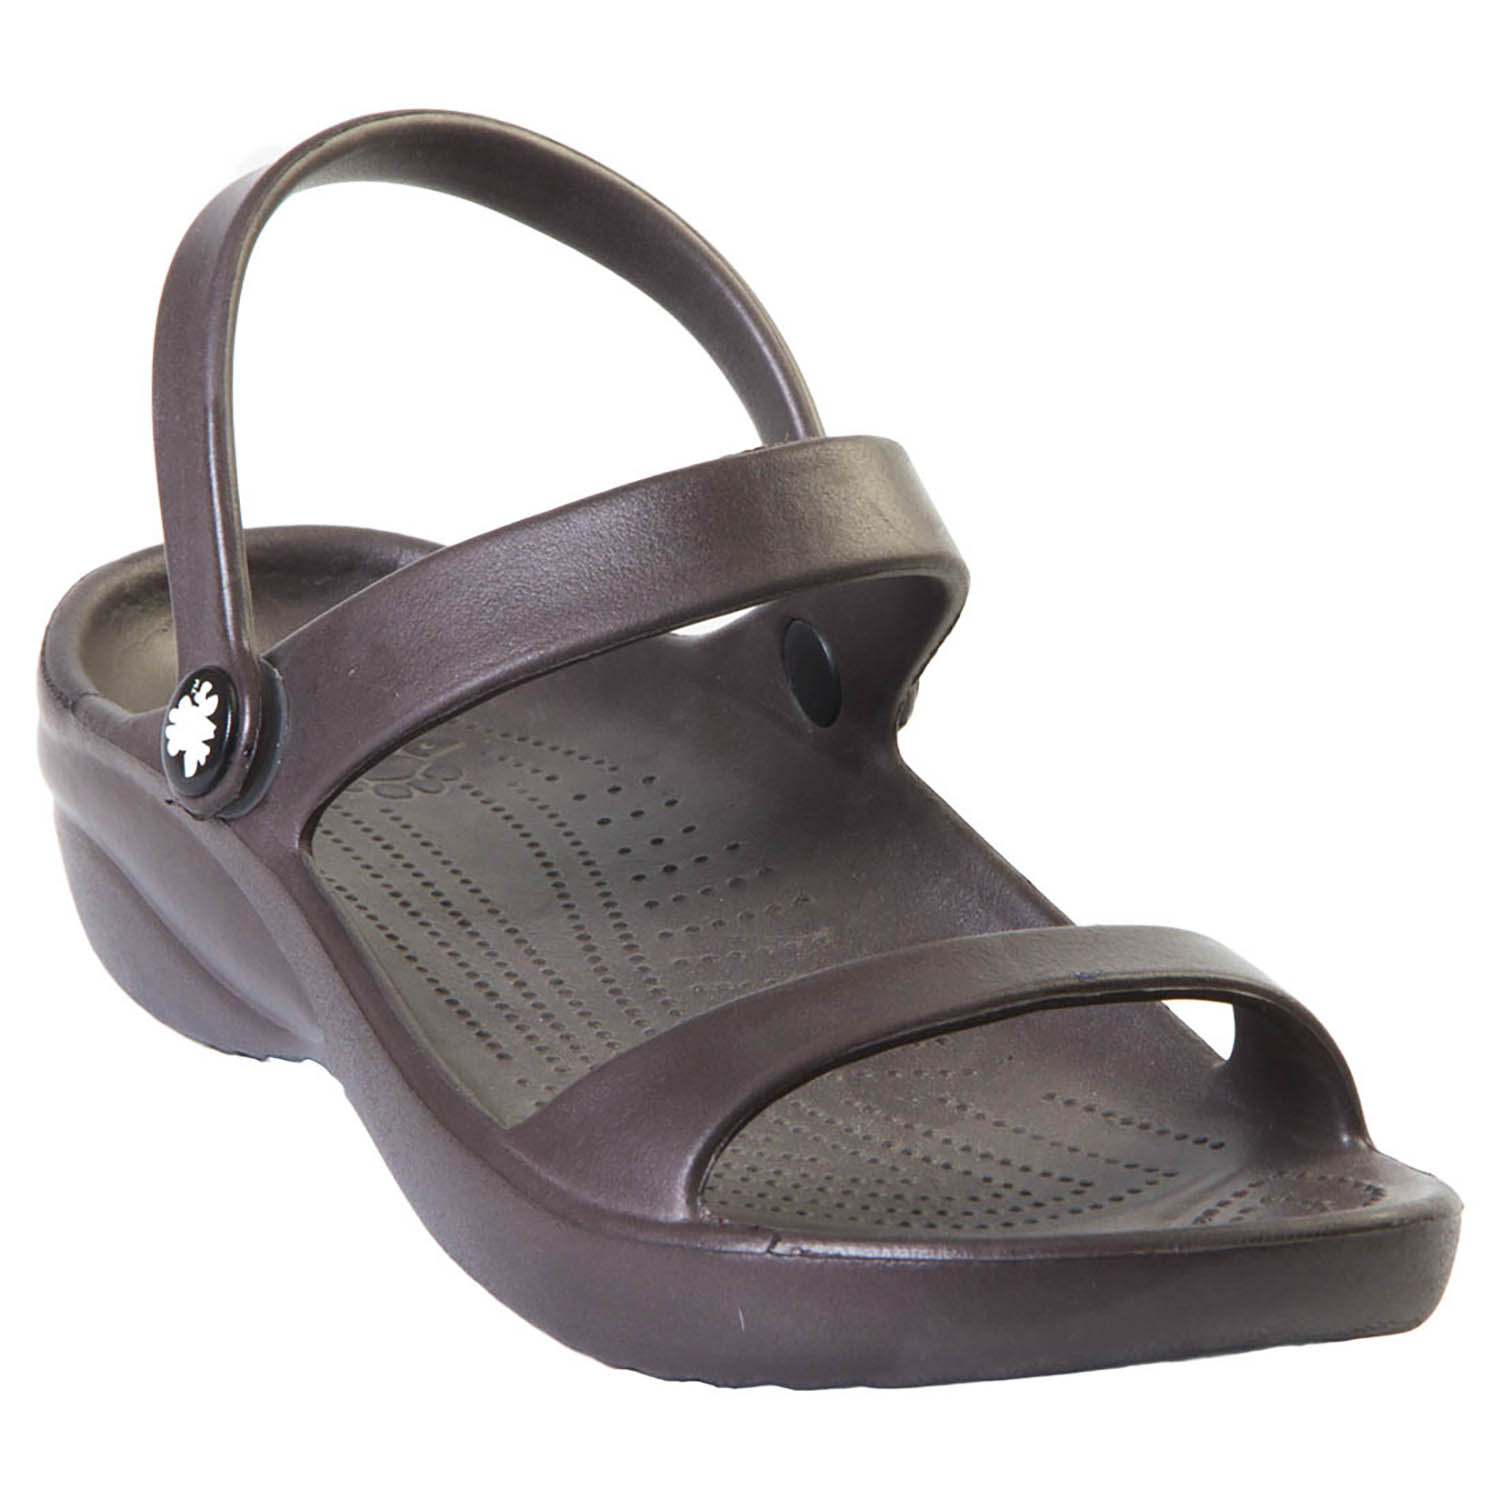 Dawgs Womens' 3-Strap Sandals